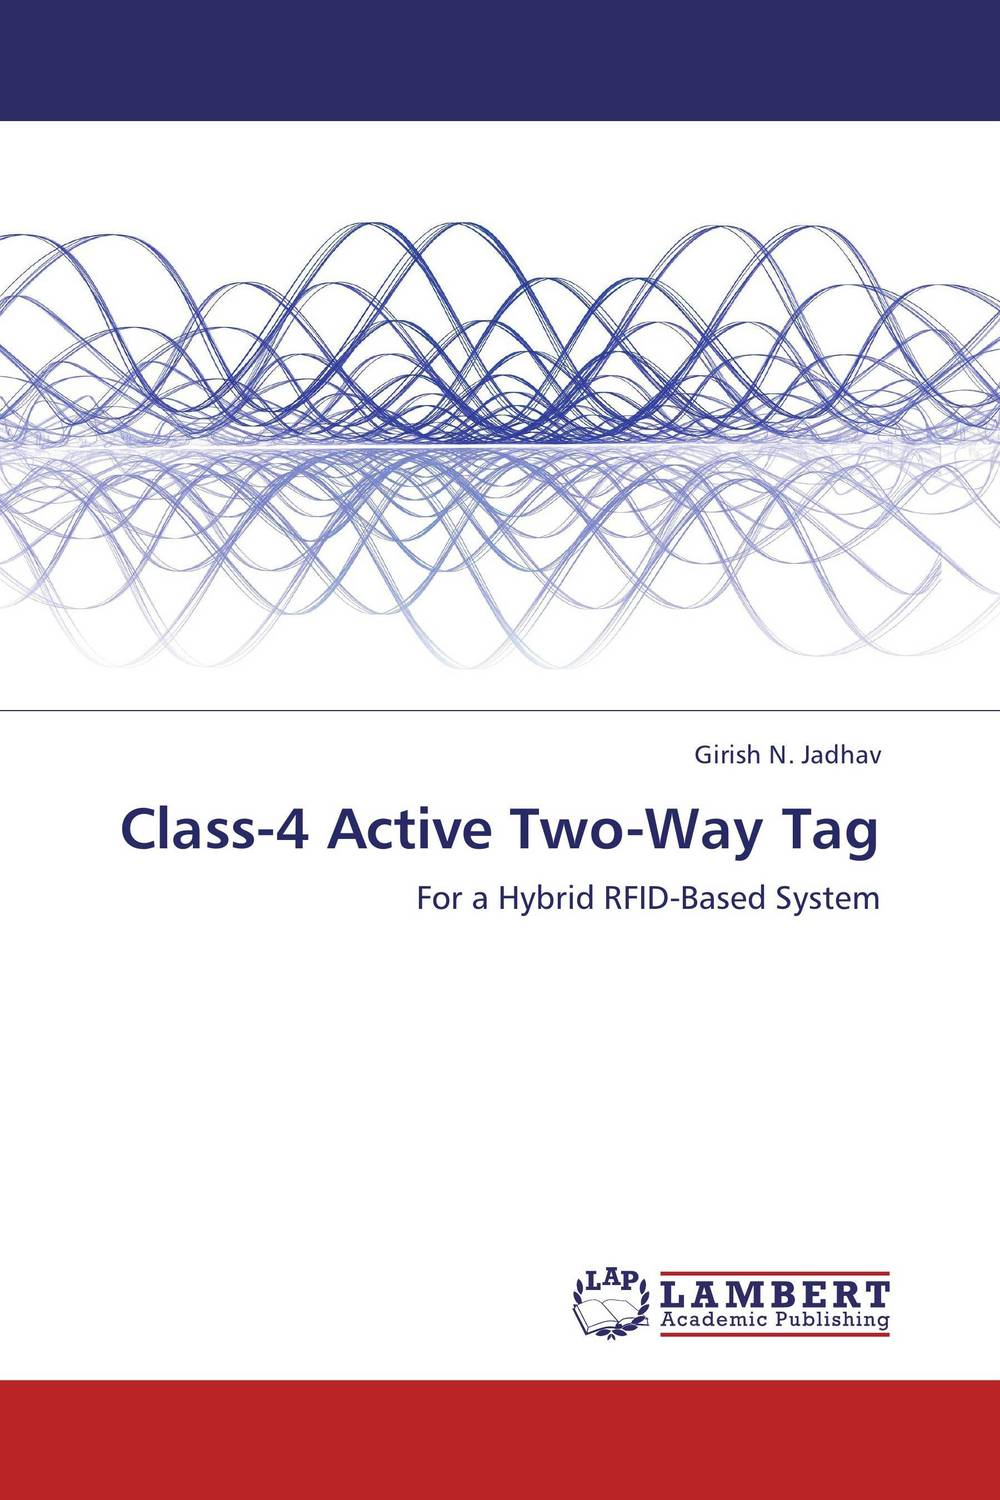 Class-4 Active Two-Way Tag rfid tag uhf sticker alien 9662 epc6c wet inlay 915mhz868mhz higgs3 500pcs free shipping long range adhesive passive rfid label